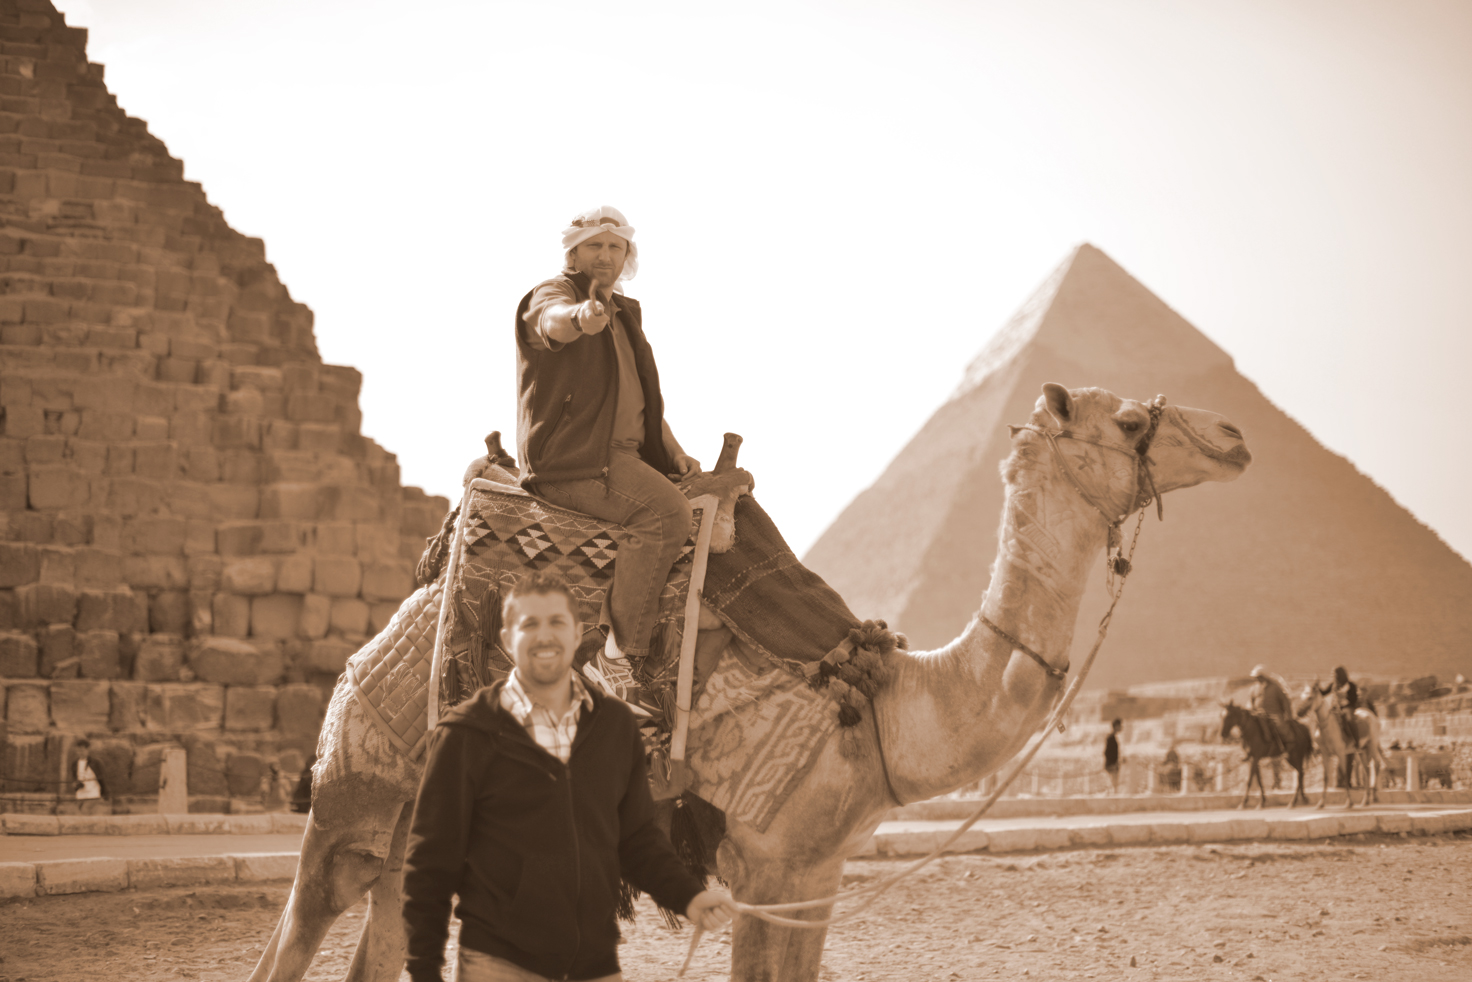 A Camel ride at the Great Pyramids